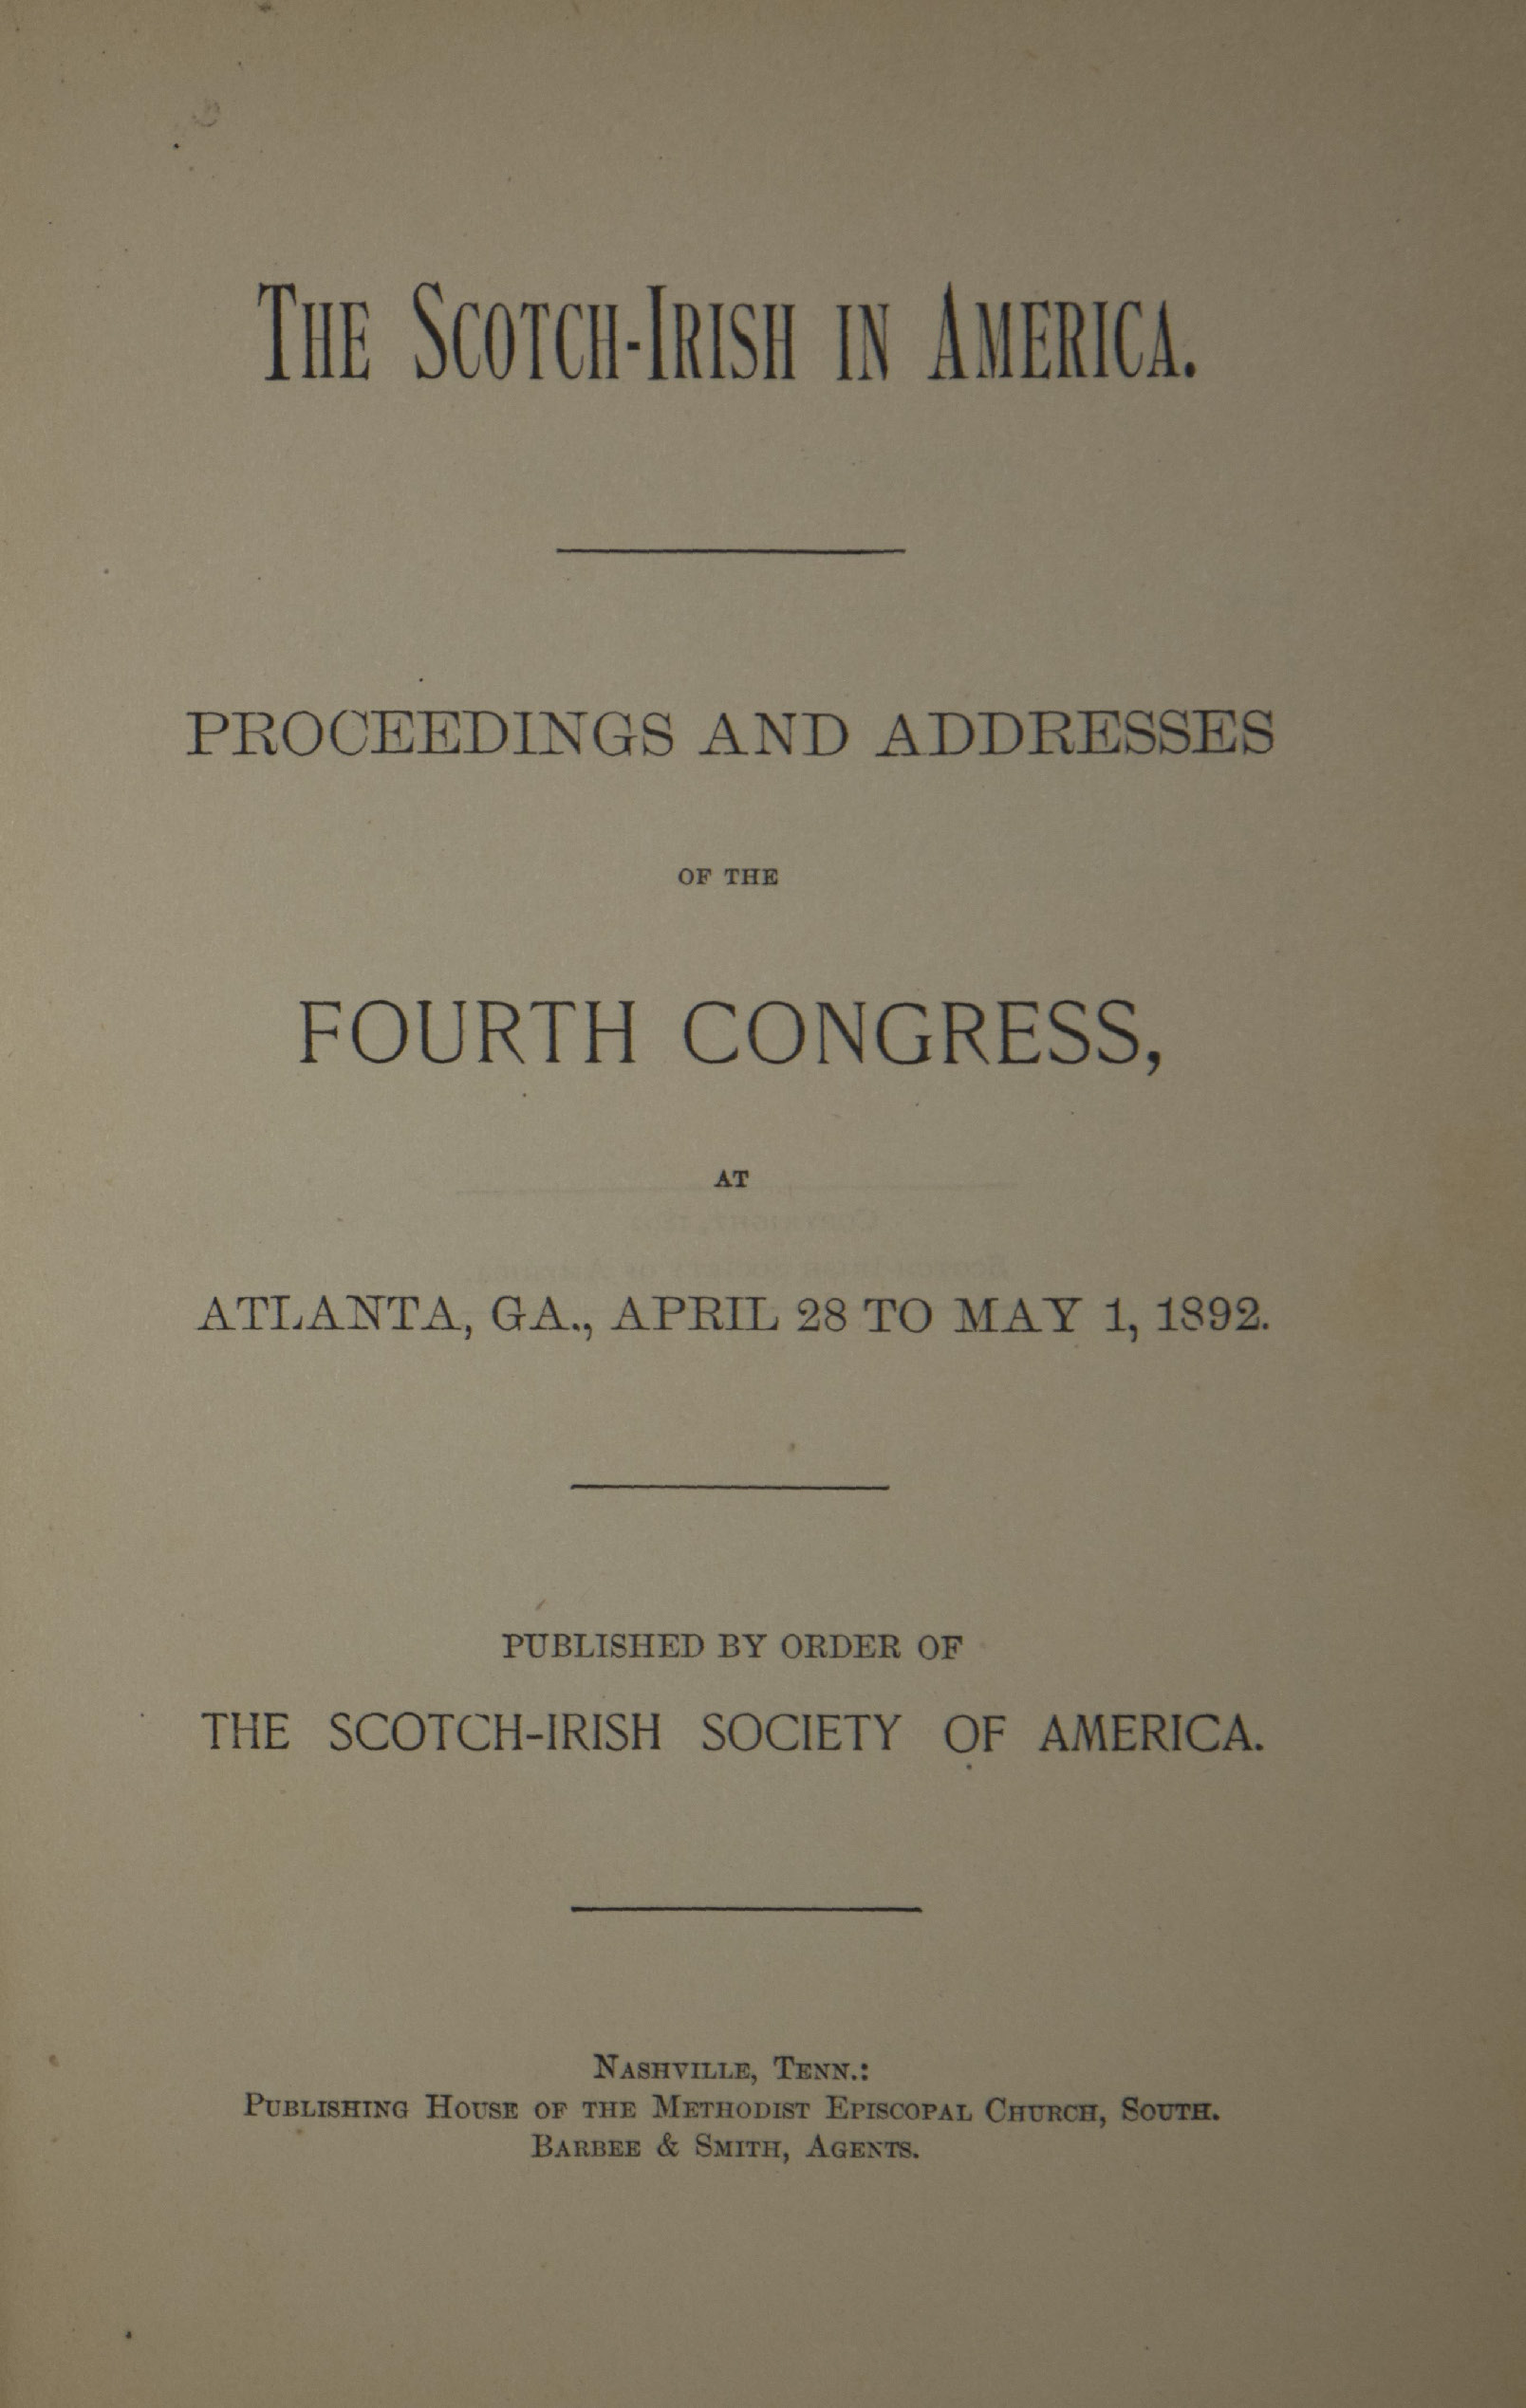 photo of The Scotch-Irish in America, Proceedings and Addresses of the Fourth Congress April-May 1892